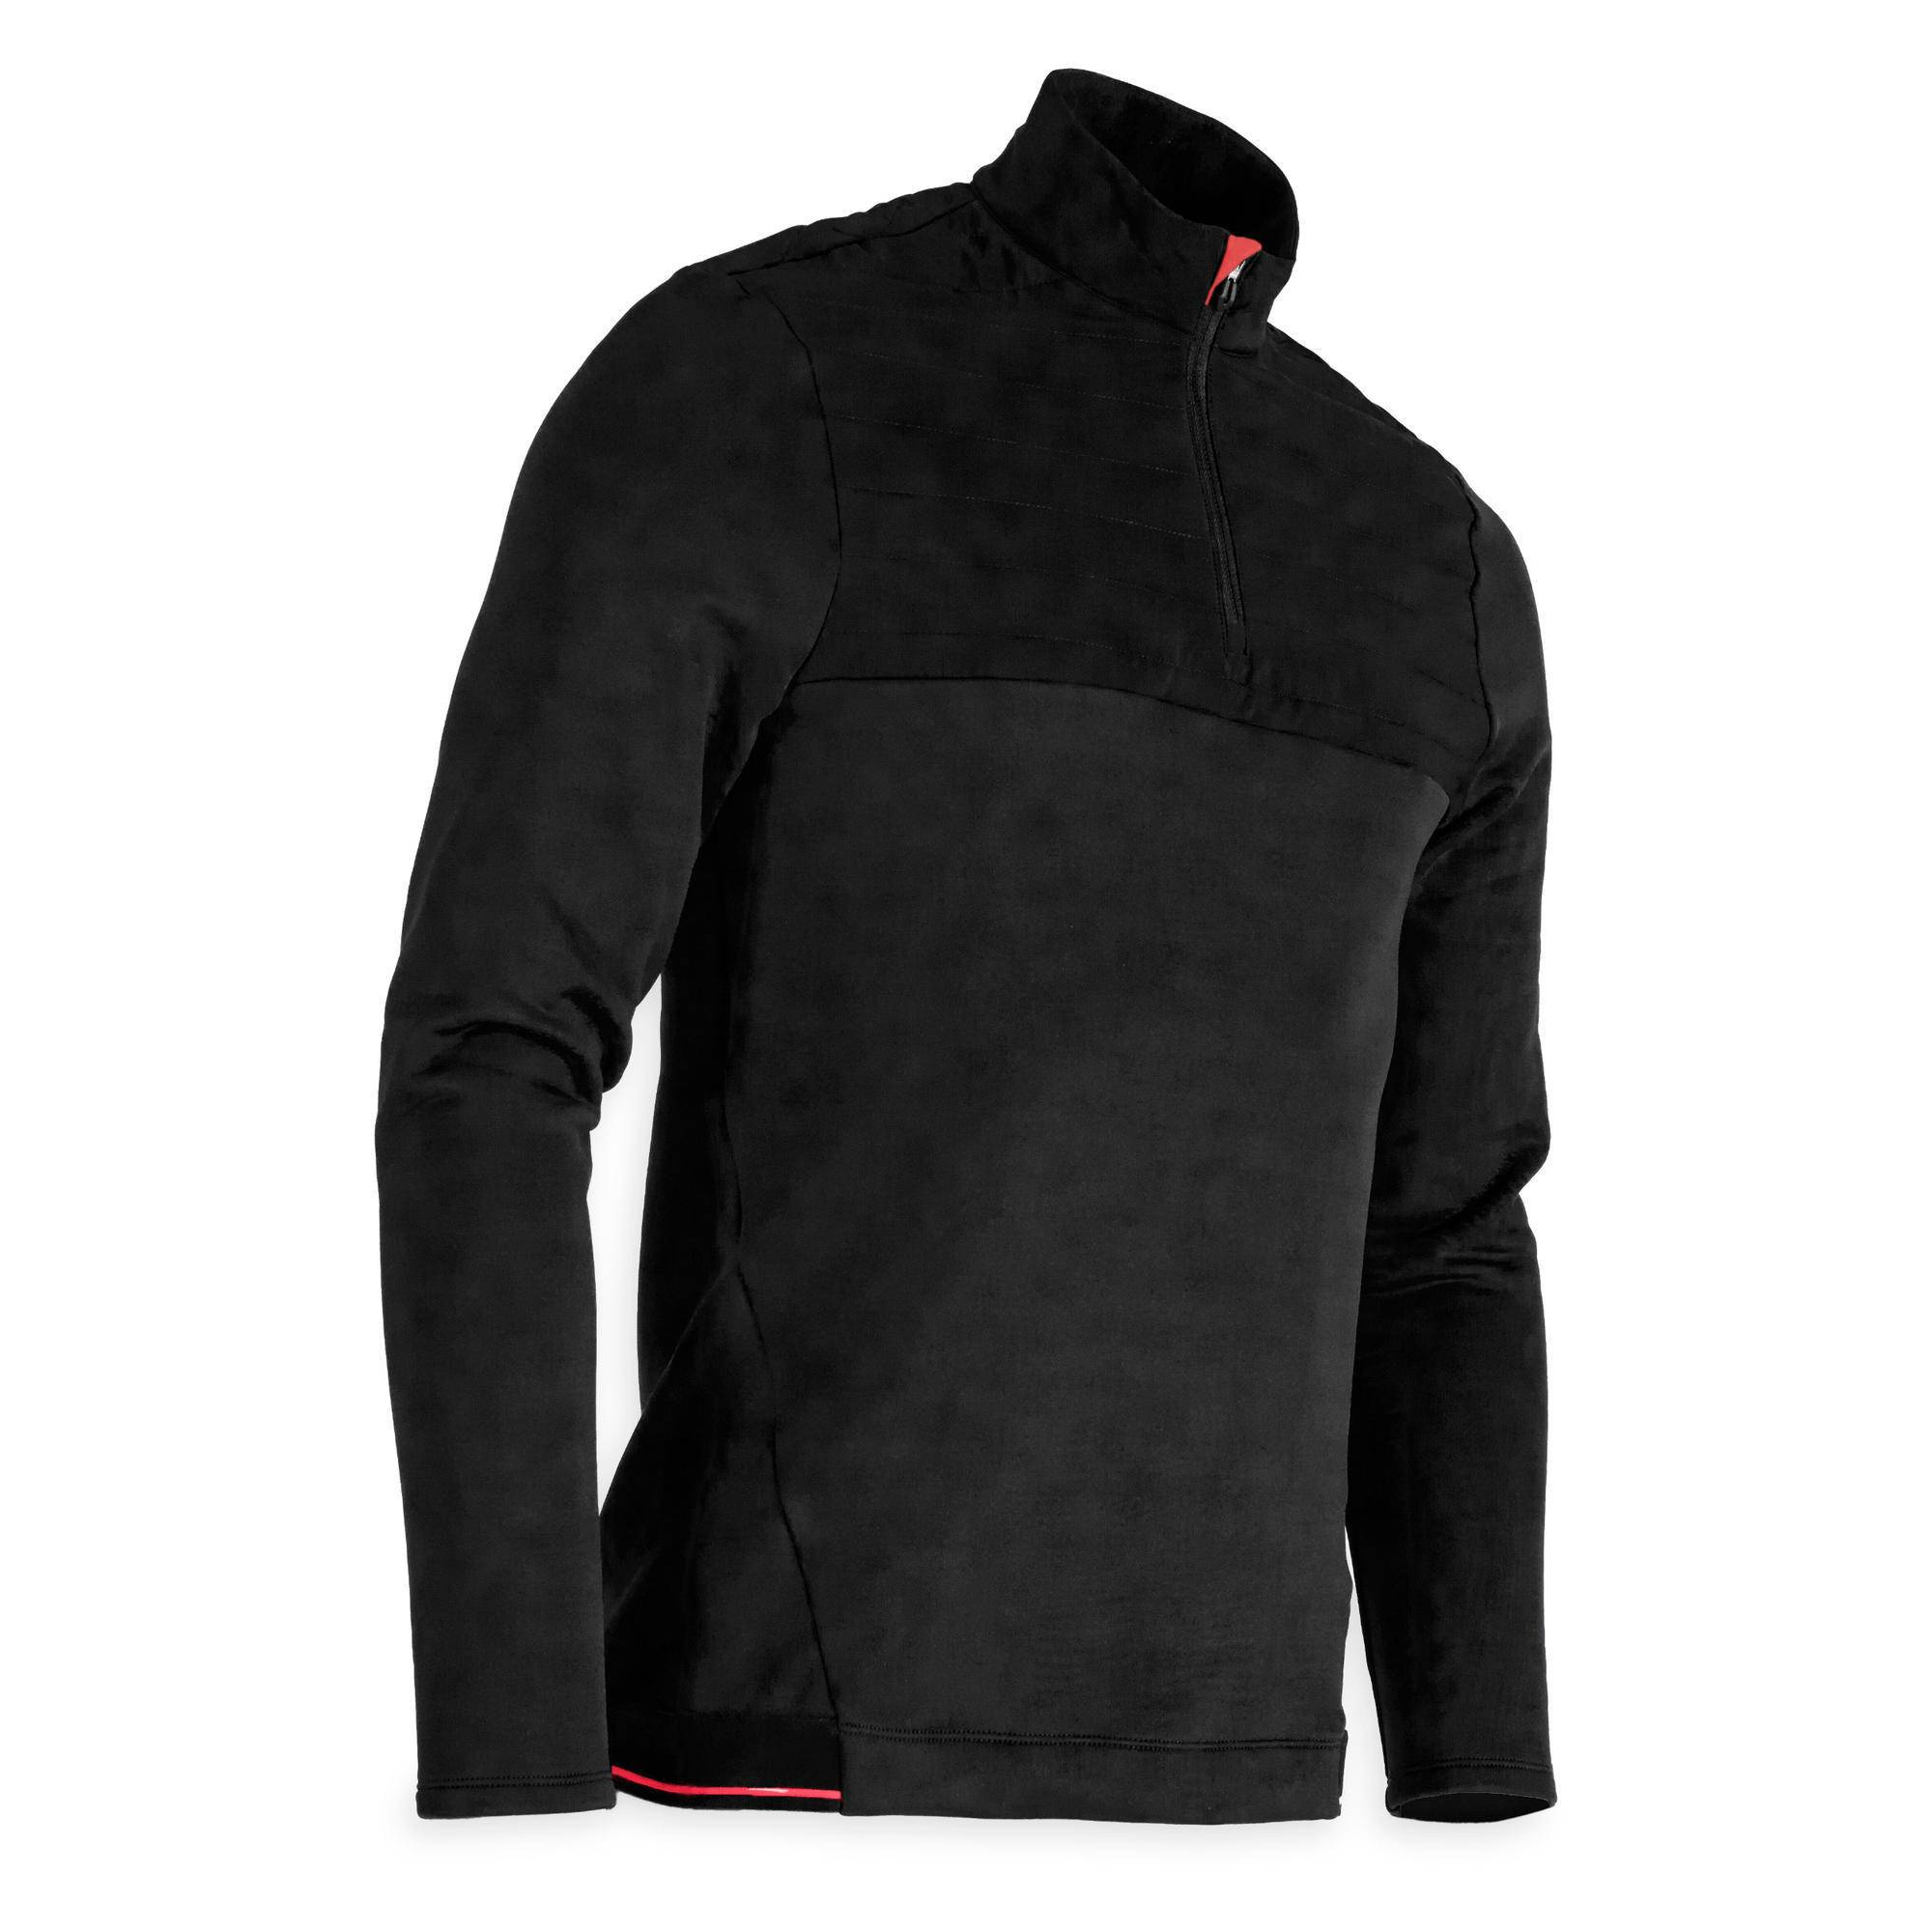 Inesis SWEAT POLAIRE GOLF HOMME TEMPS FROID NOIR - Inesis